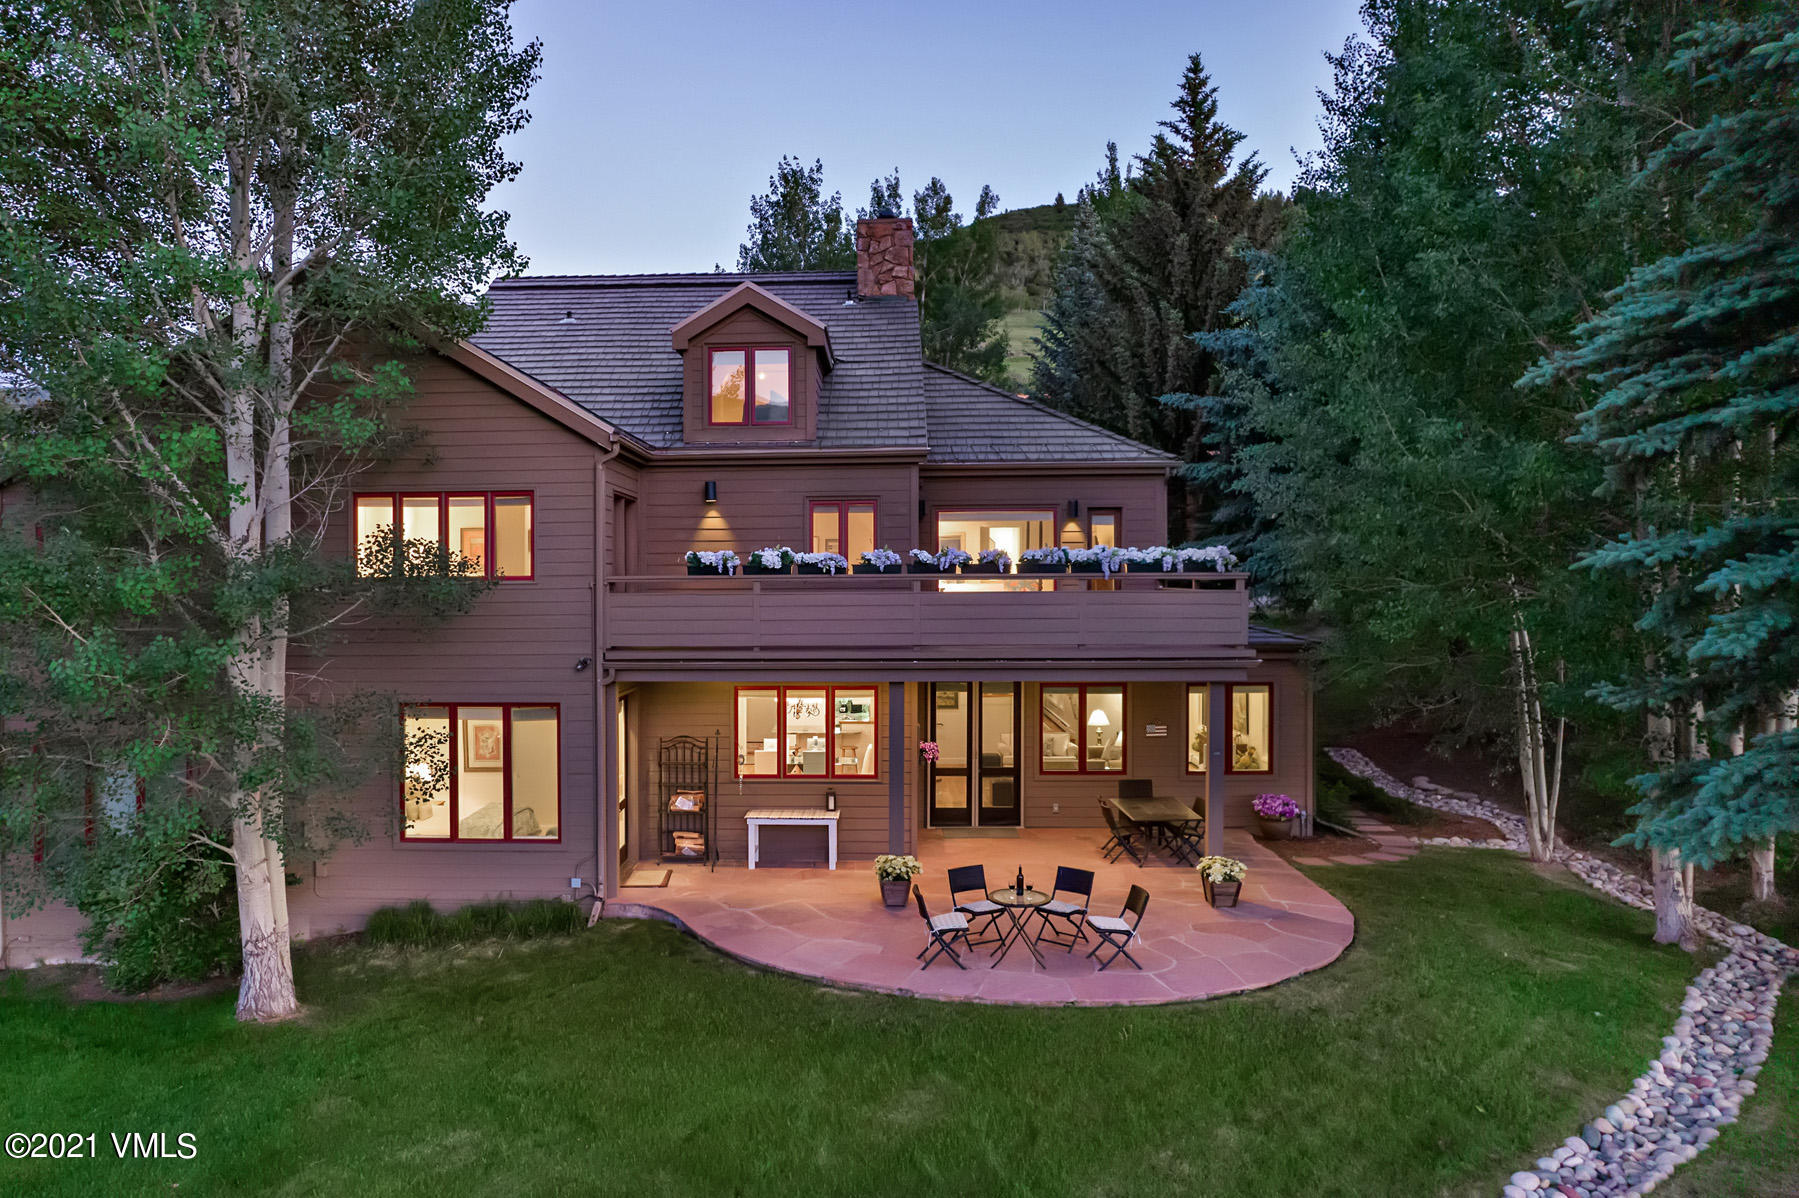 Rare opportunity to own this 5-bedroom, 4,822 square foot duplex located on the Beaver Creek Golf Course with magnificent golf course views throughout the house. The main level features a great room with walkout patio overlooking the golf course, kitchen with breakfast nook and wet bar, dining room and secondary master suite. The grand master suite with sitting room is located on the second level accompanied by three guest bedrooms and expansive deck.  All families will enjoy the spacious secondary living area, full bathroom and multiple storage closets on the third floor.  With ski-out access via the Beaver Creek Landing gondola and also on Beaver Creek's complimentary shuttle route, this is not to be missed!  Recent improvements (2019) include a new roof, boiler, refrigerator, cooktop/range and microwave.